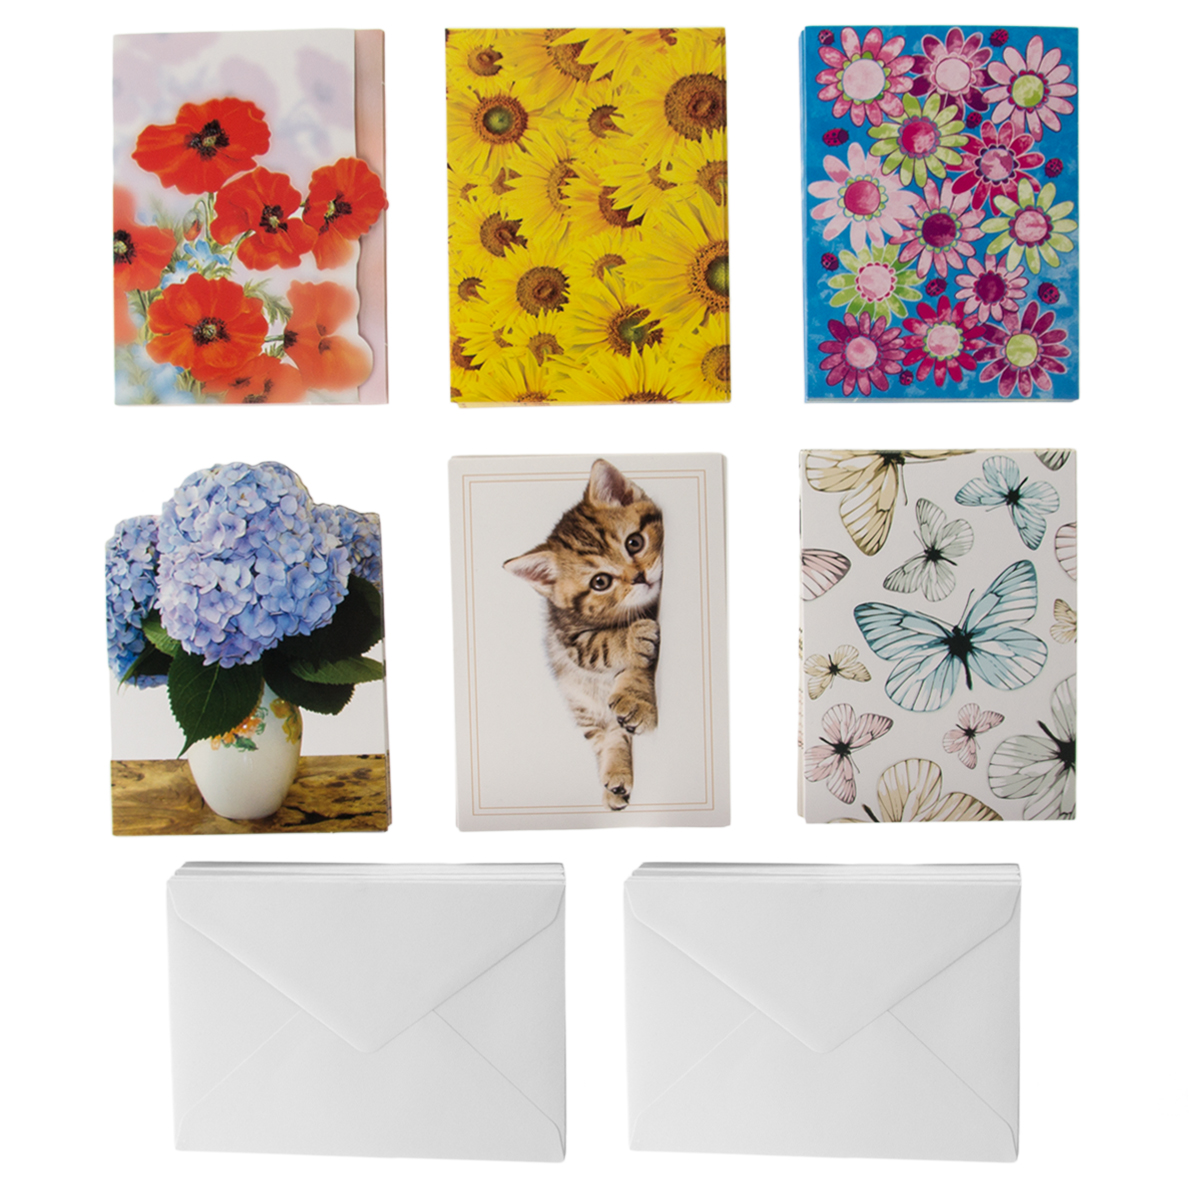 60ct All Occasion Assorted Blank On The Inside Gift Cards & Envelopes Designer Greetings Notes Bulk Lot  4x6